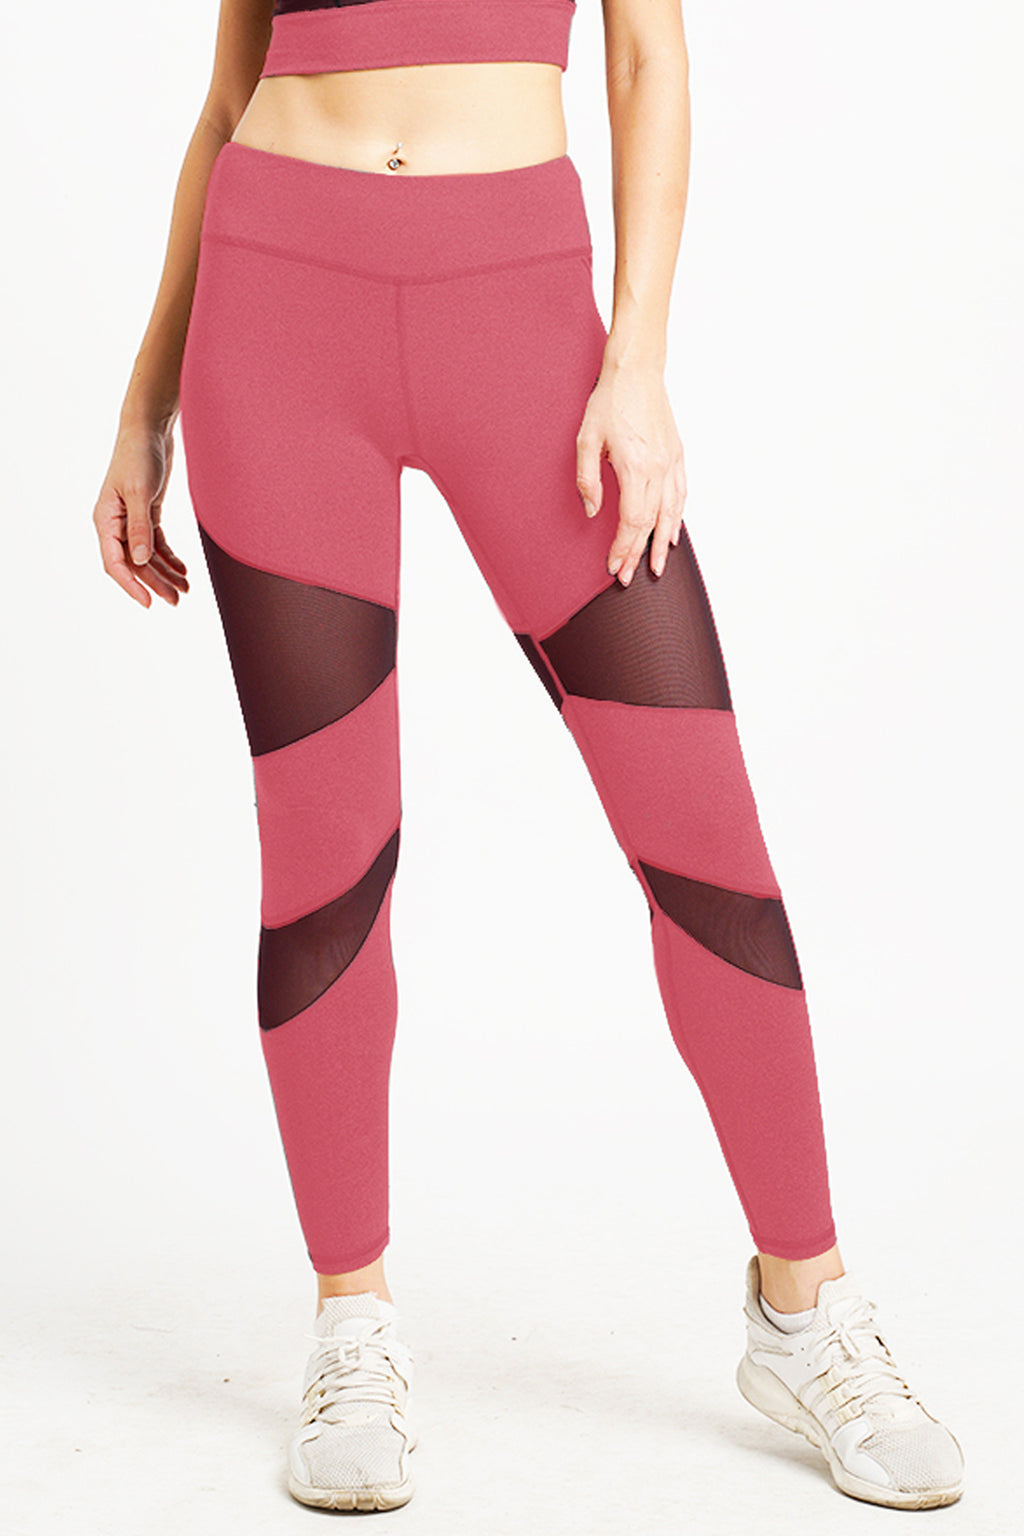 Citta High Waist Full Length Tight Plumful Pink